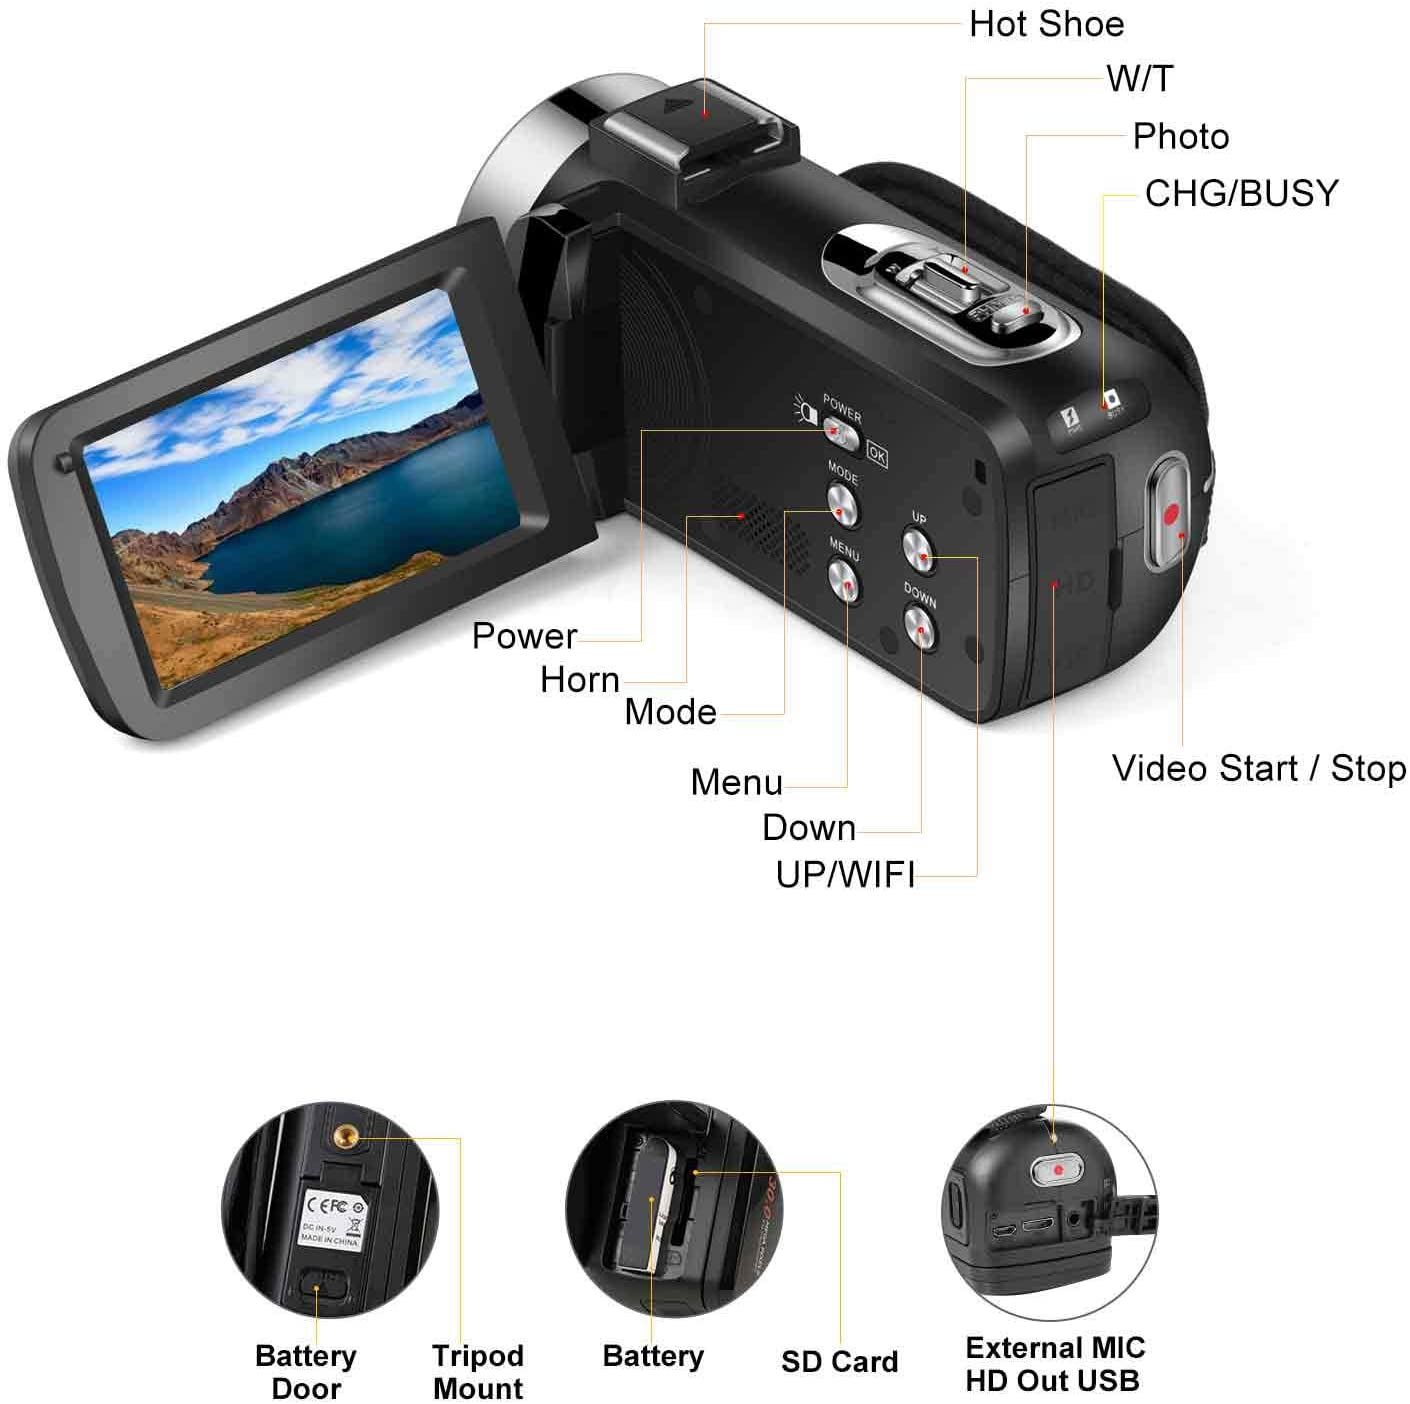 Digital YouTube Vlogging Camera FHD 1080P 30FPS 24MP 16X Digital Zoom 3 Inch Touch Screen Video Recorder with Remote Control and Tripod Video Camera Camcorder 2 Batteries